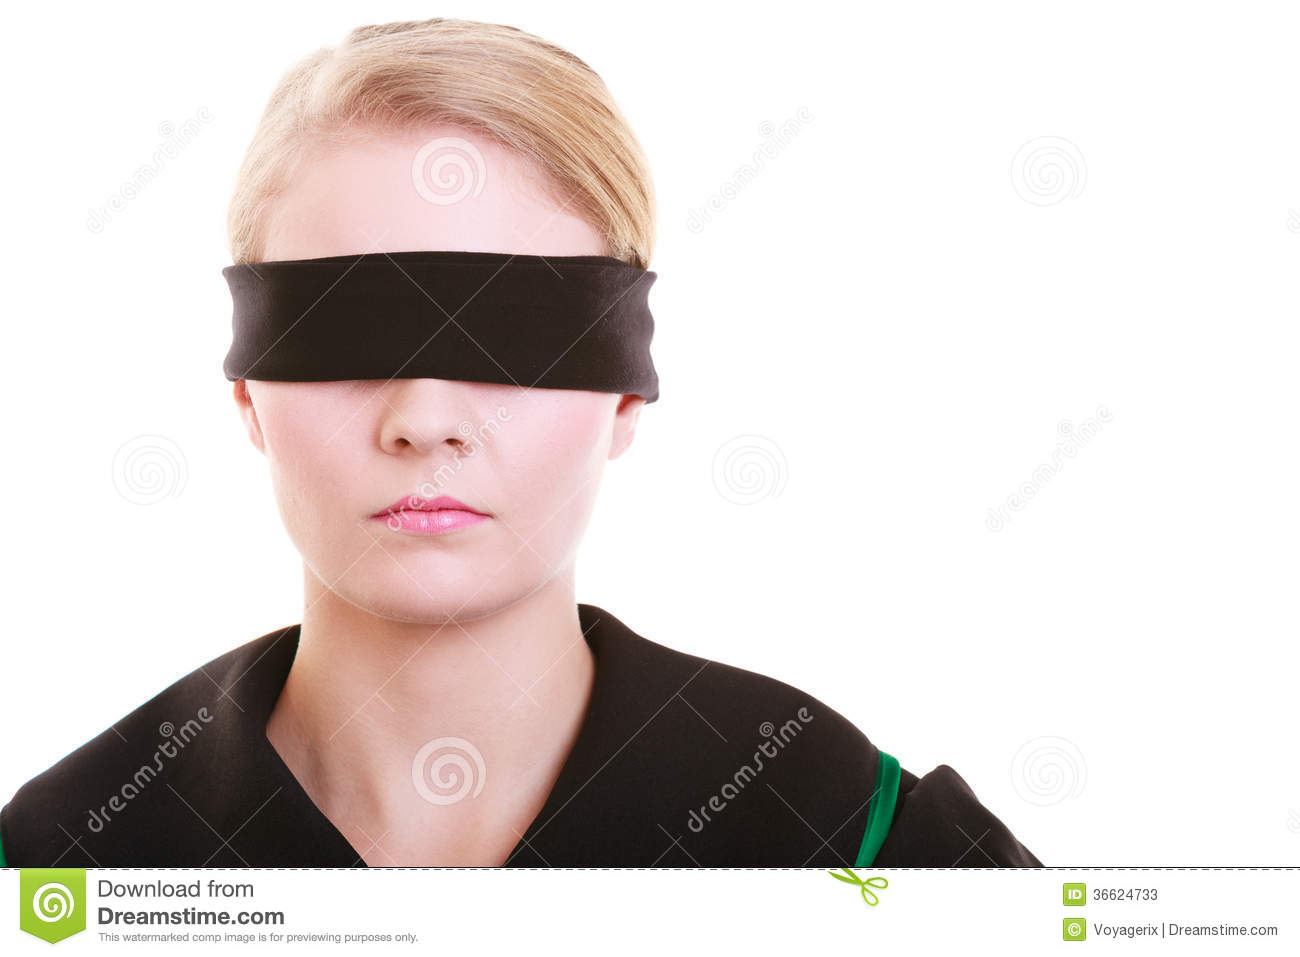 Wearing a blindfold